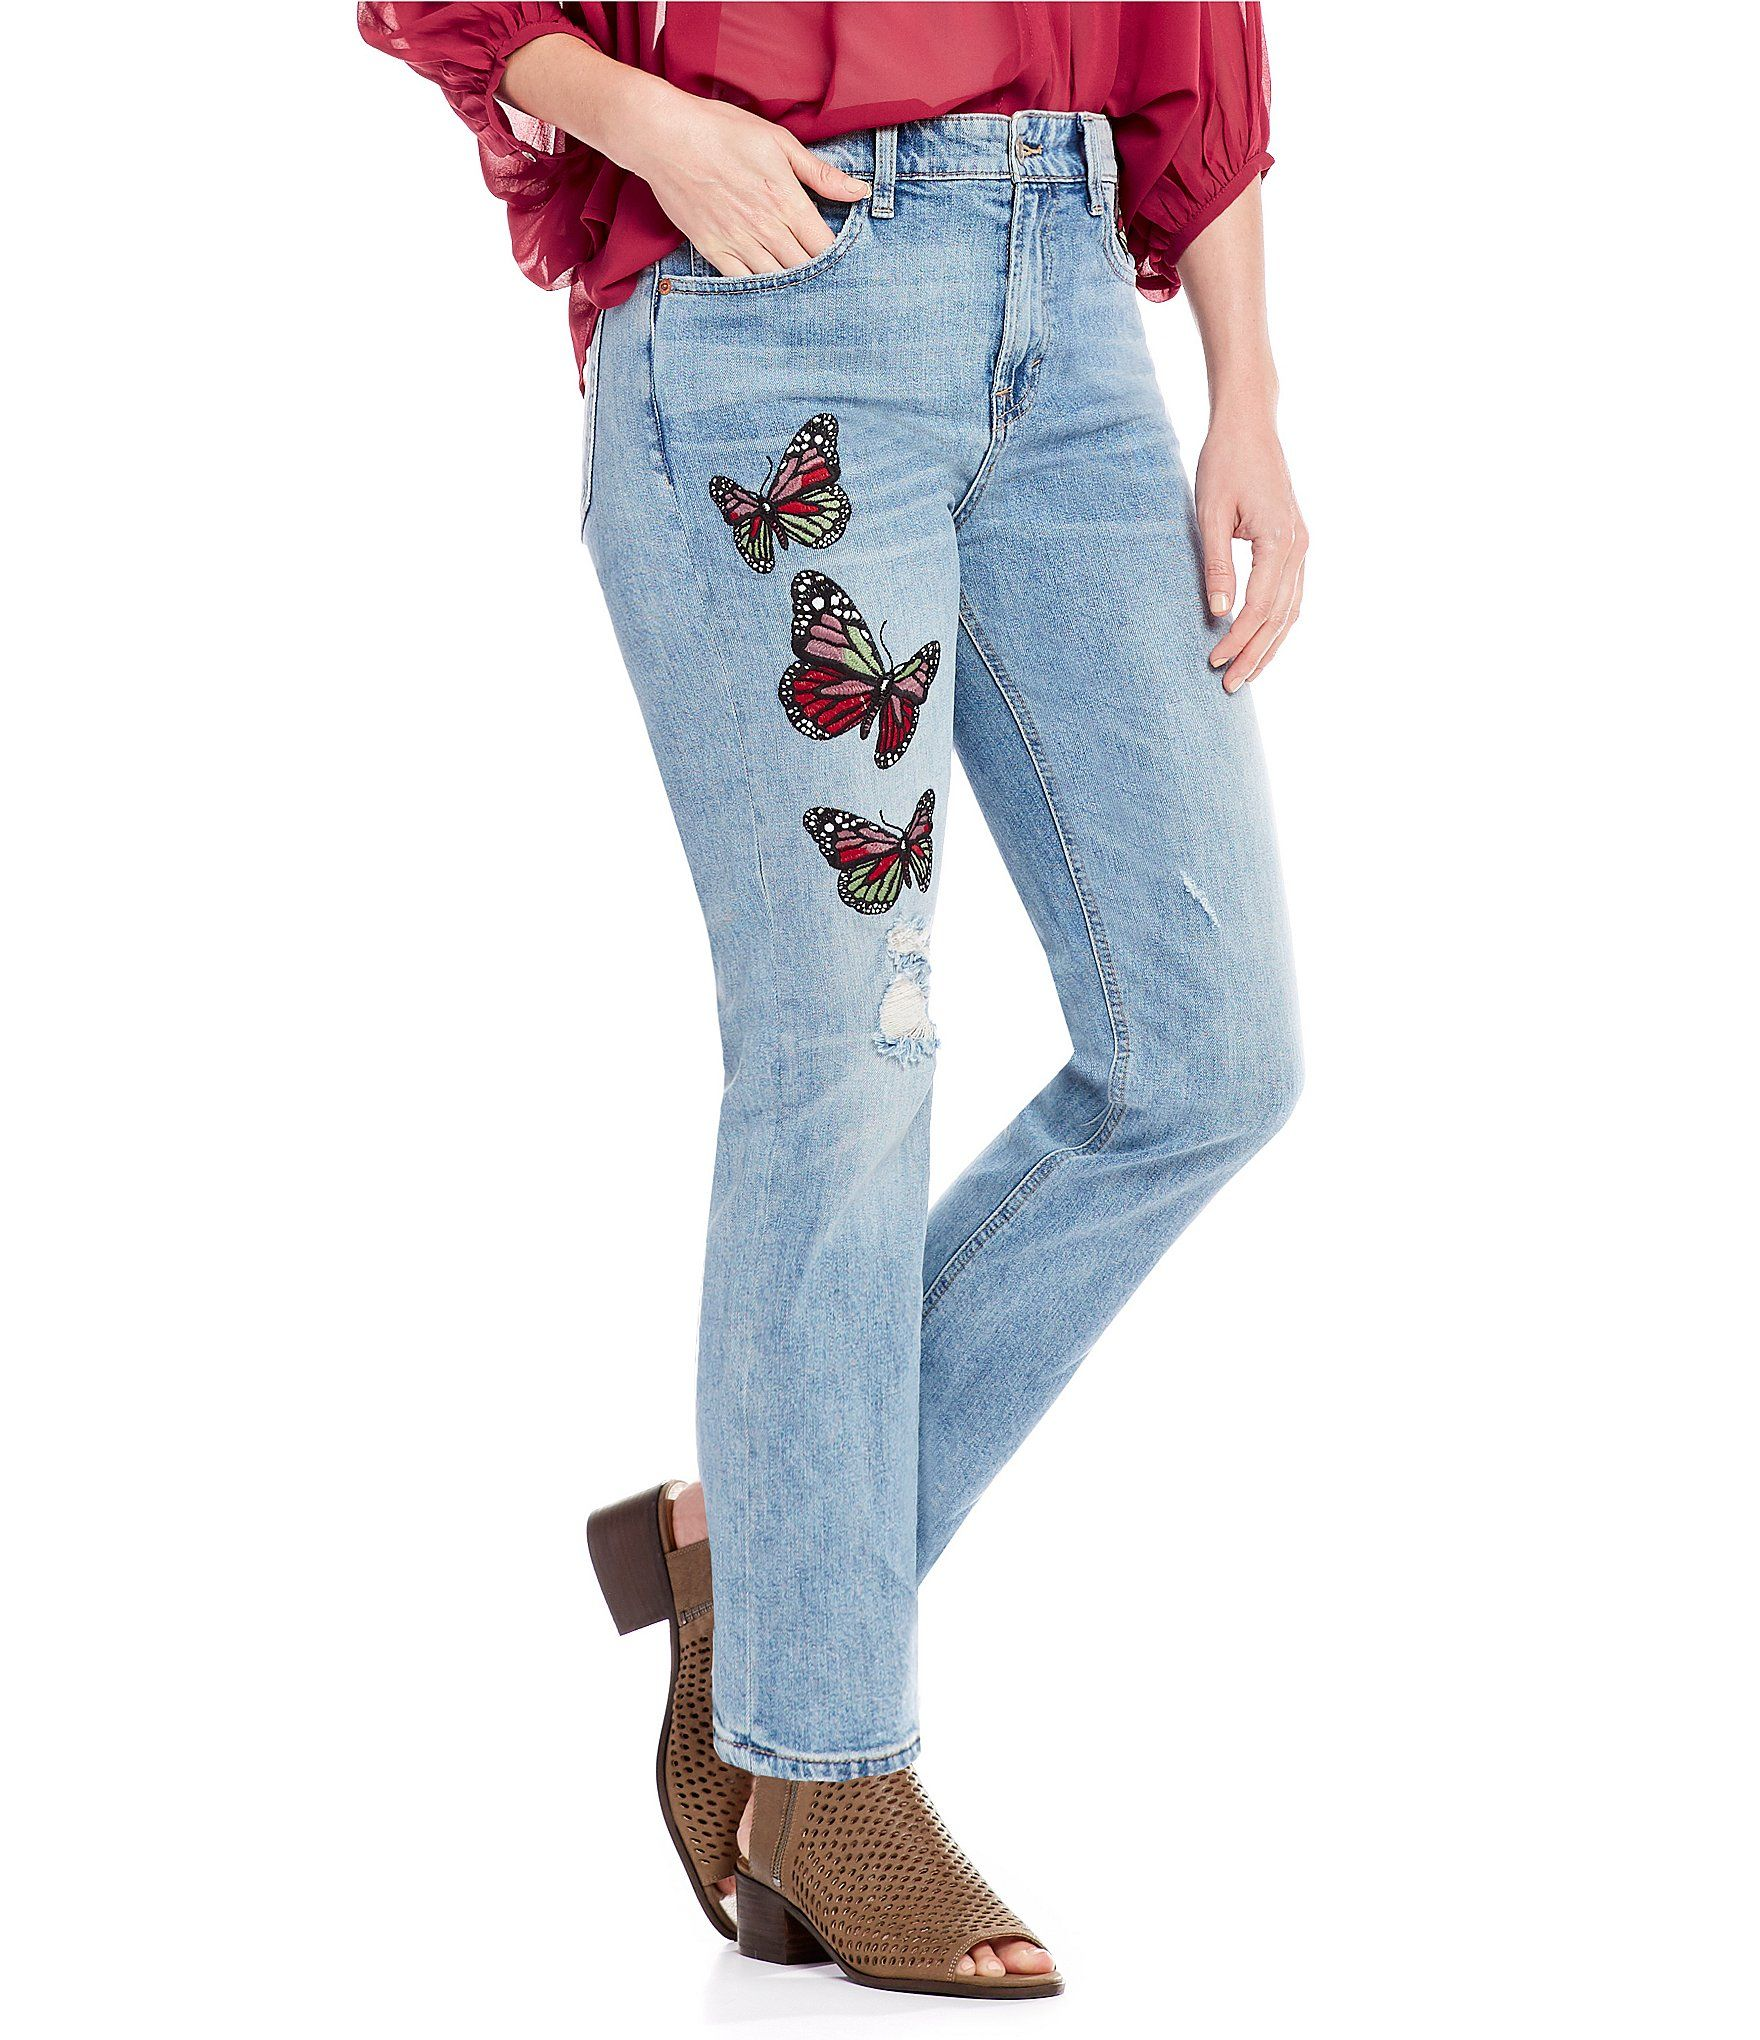 c7b488b2951ab Lucky Brand Bridgette Slim Straight Leg Butterfly Embroidered Jeans  #Dillards Embroidered Jeans, Lucky Brand